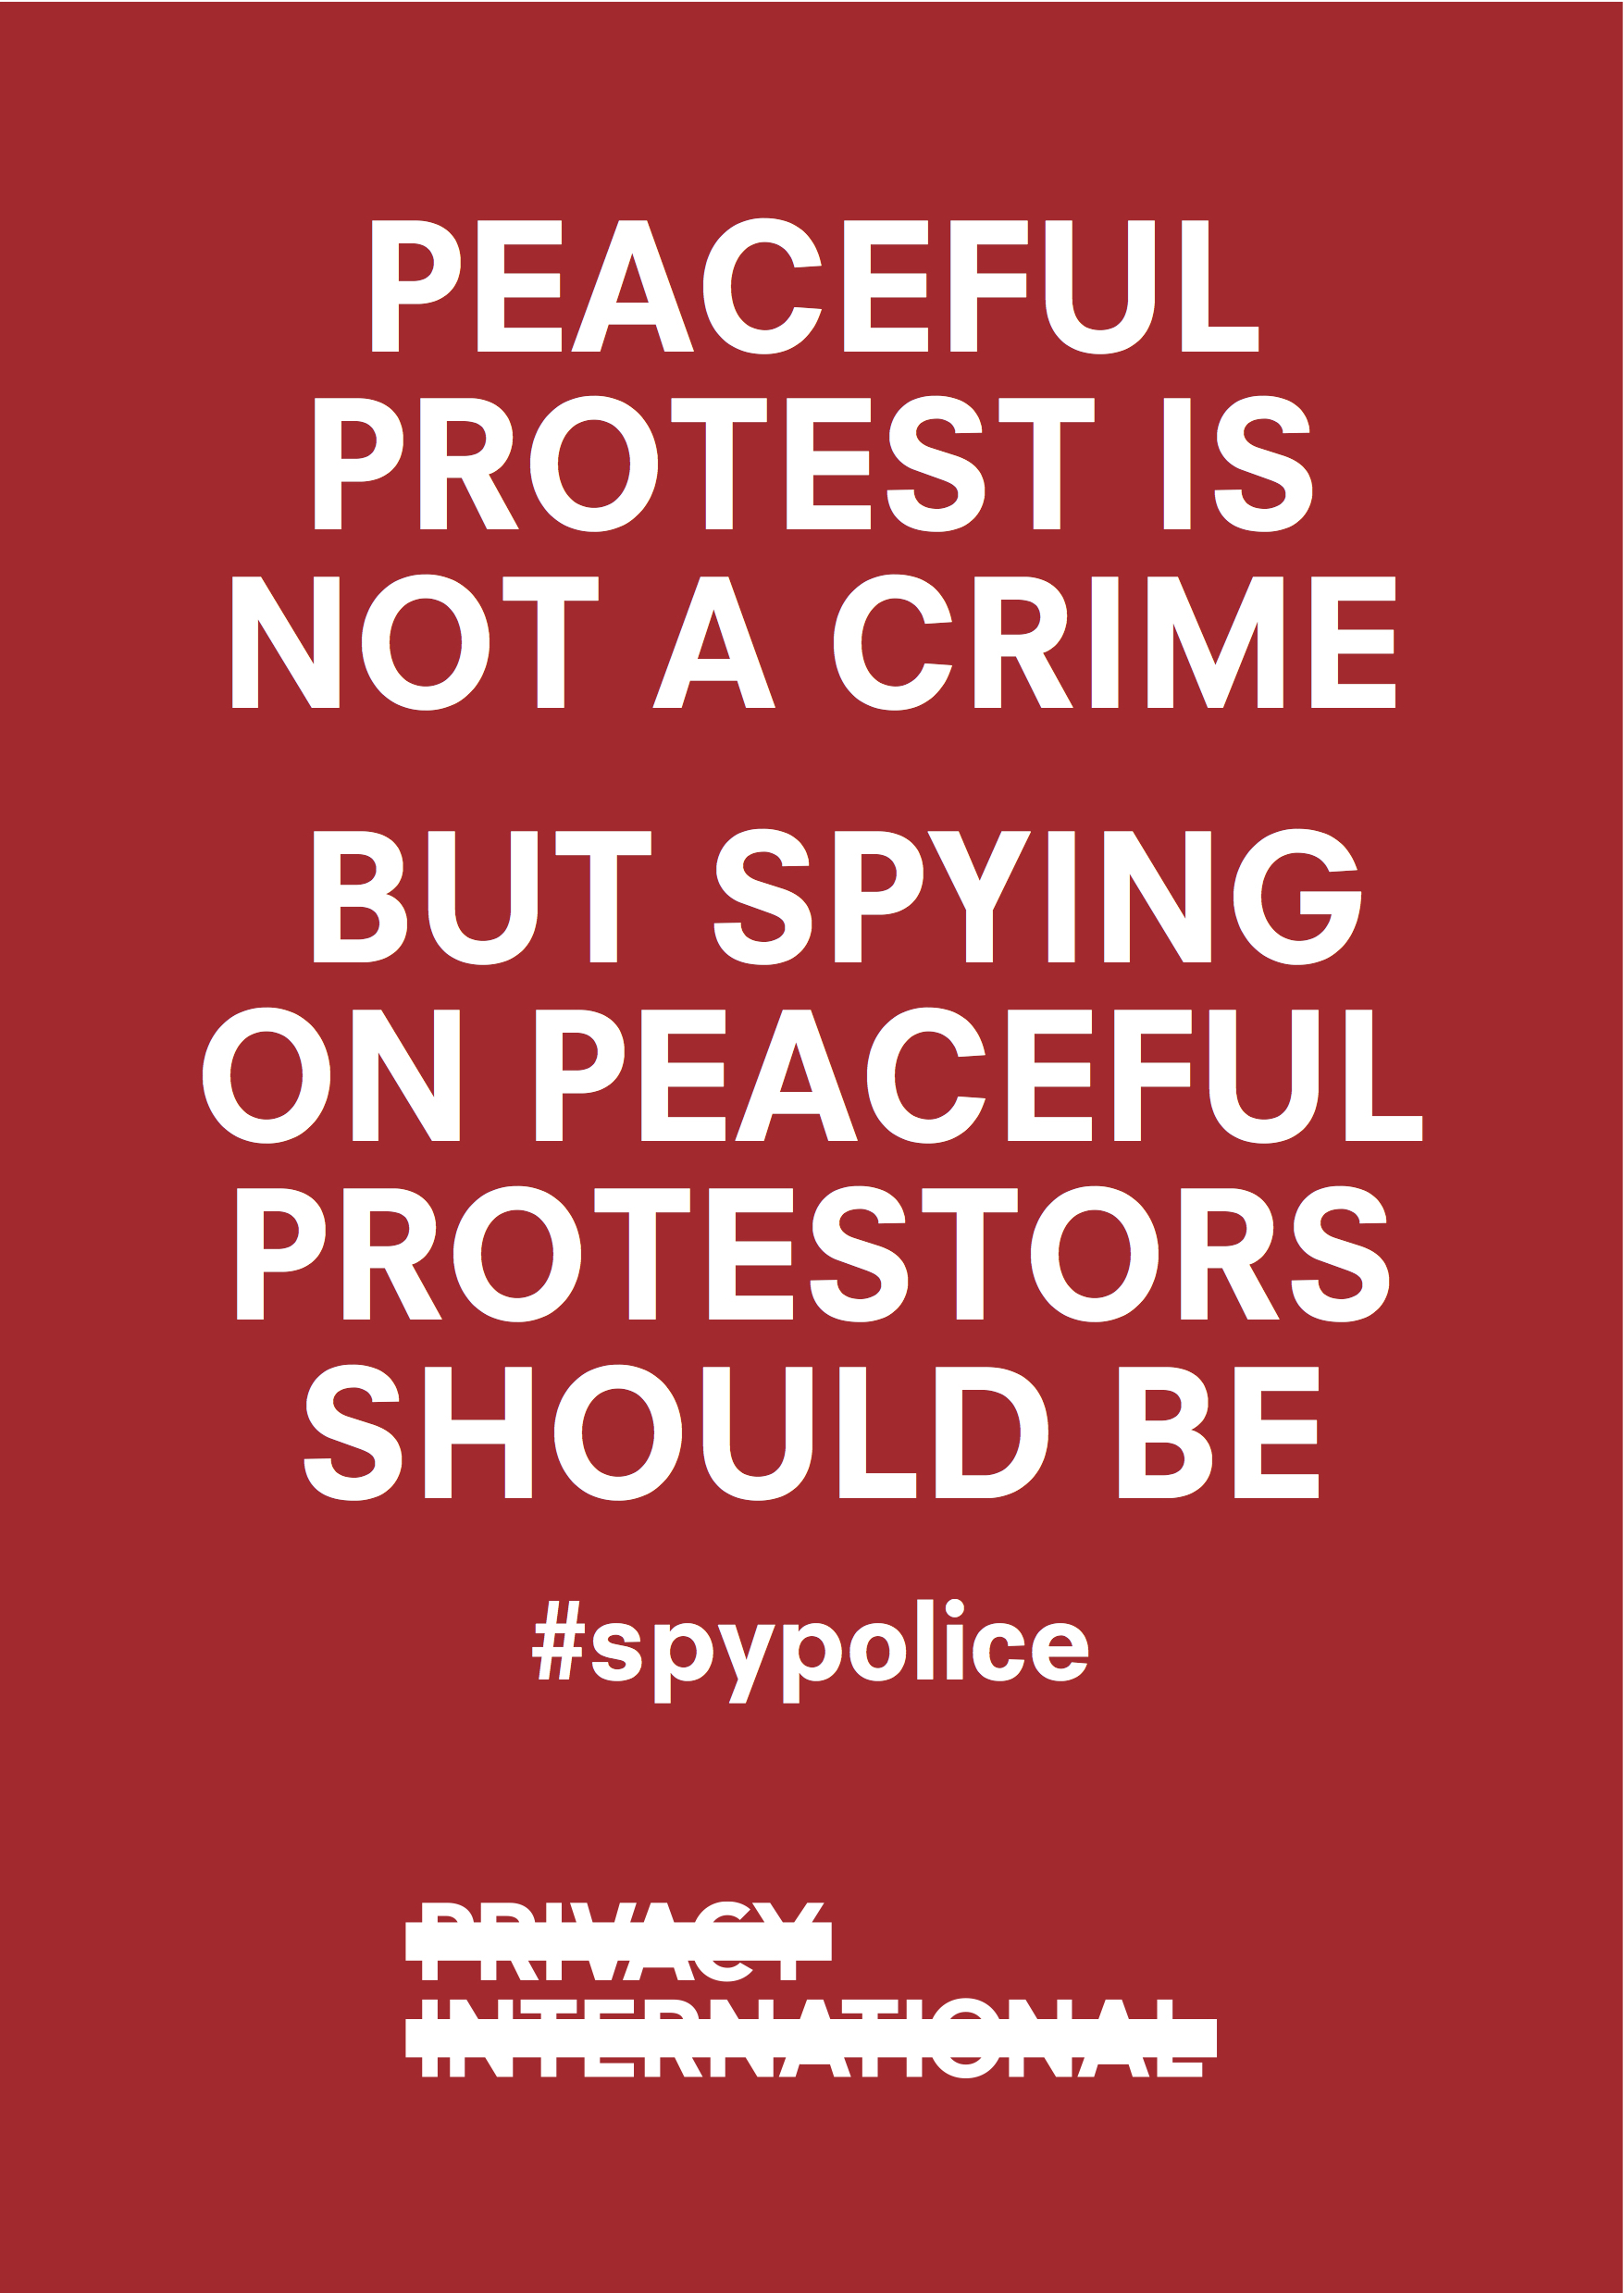 Peaceful protest is not a crime poster